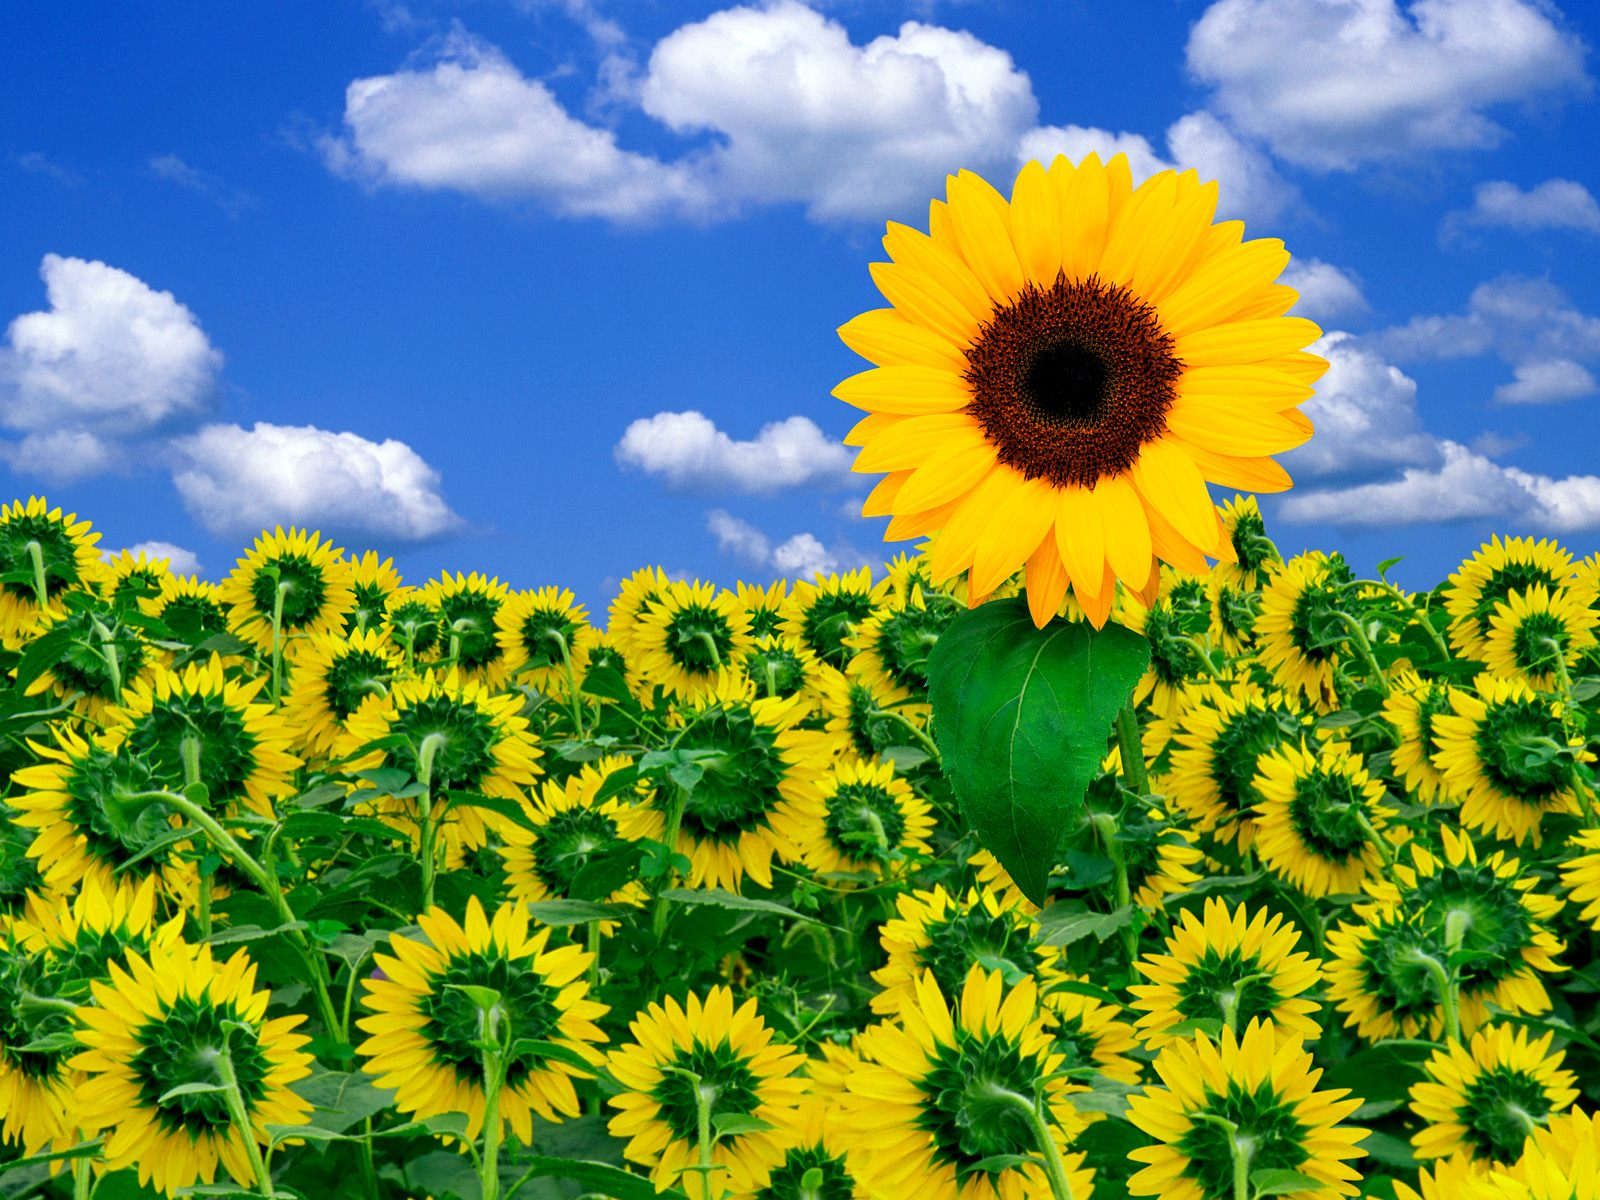 A Little Sunshine To Brighten Your Day